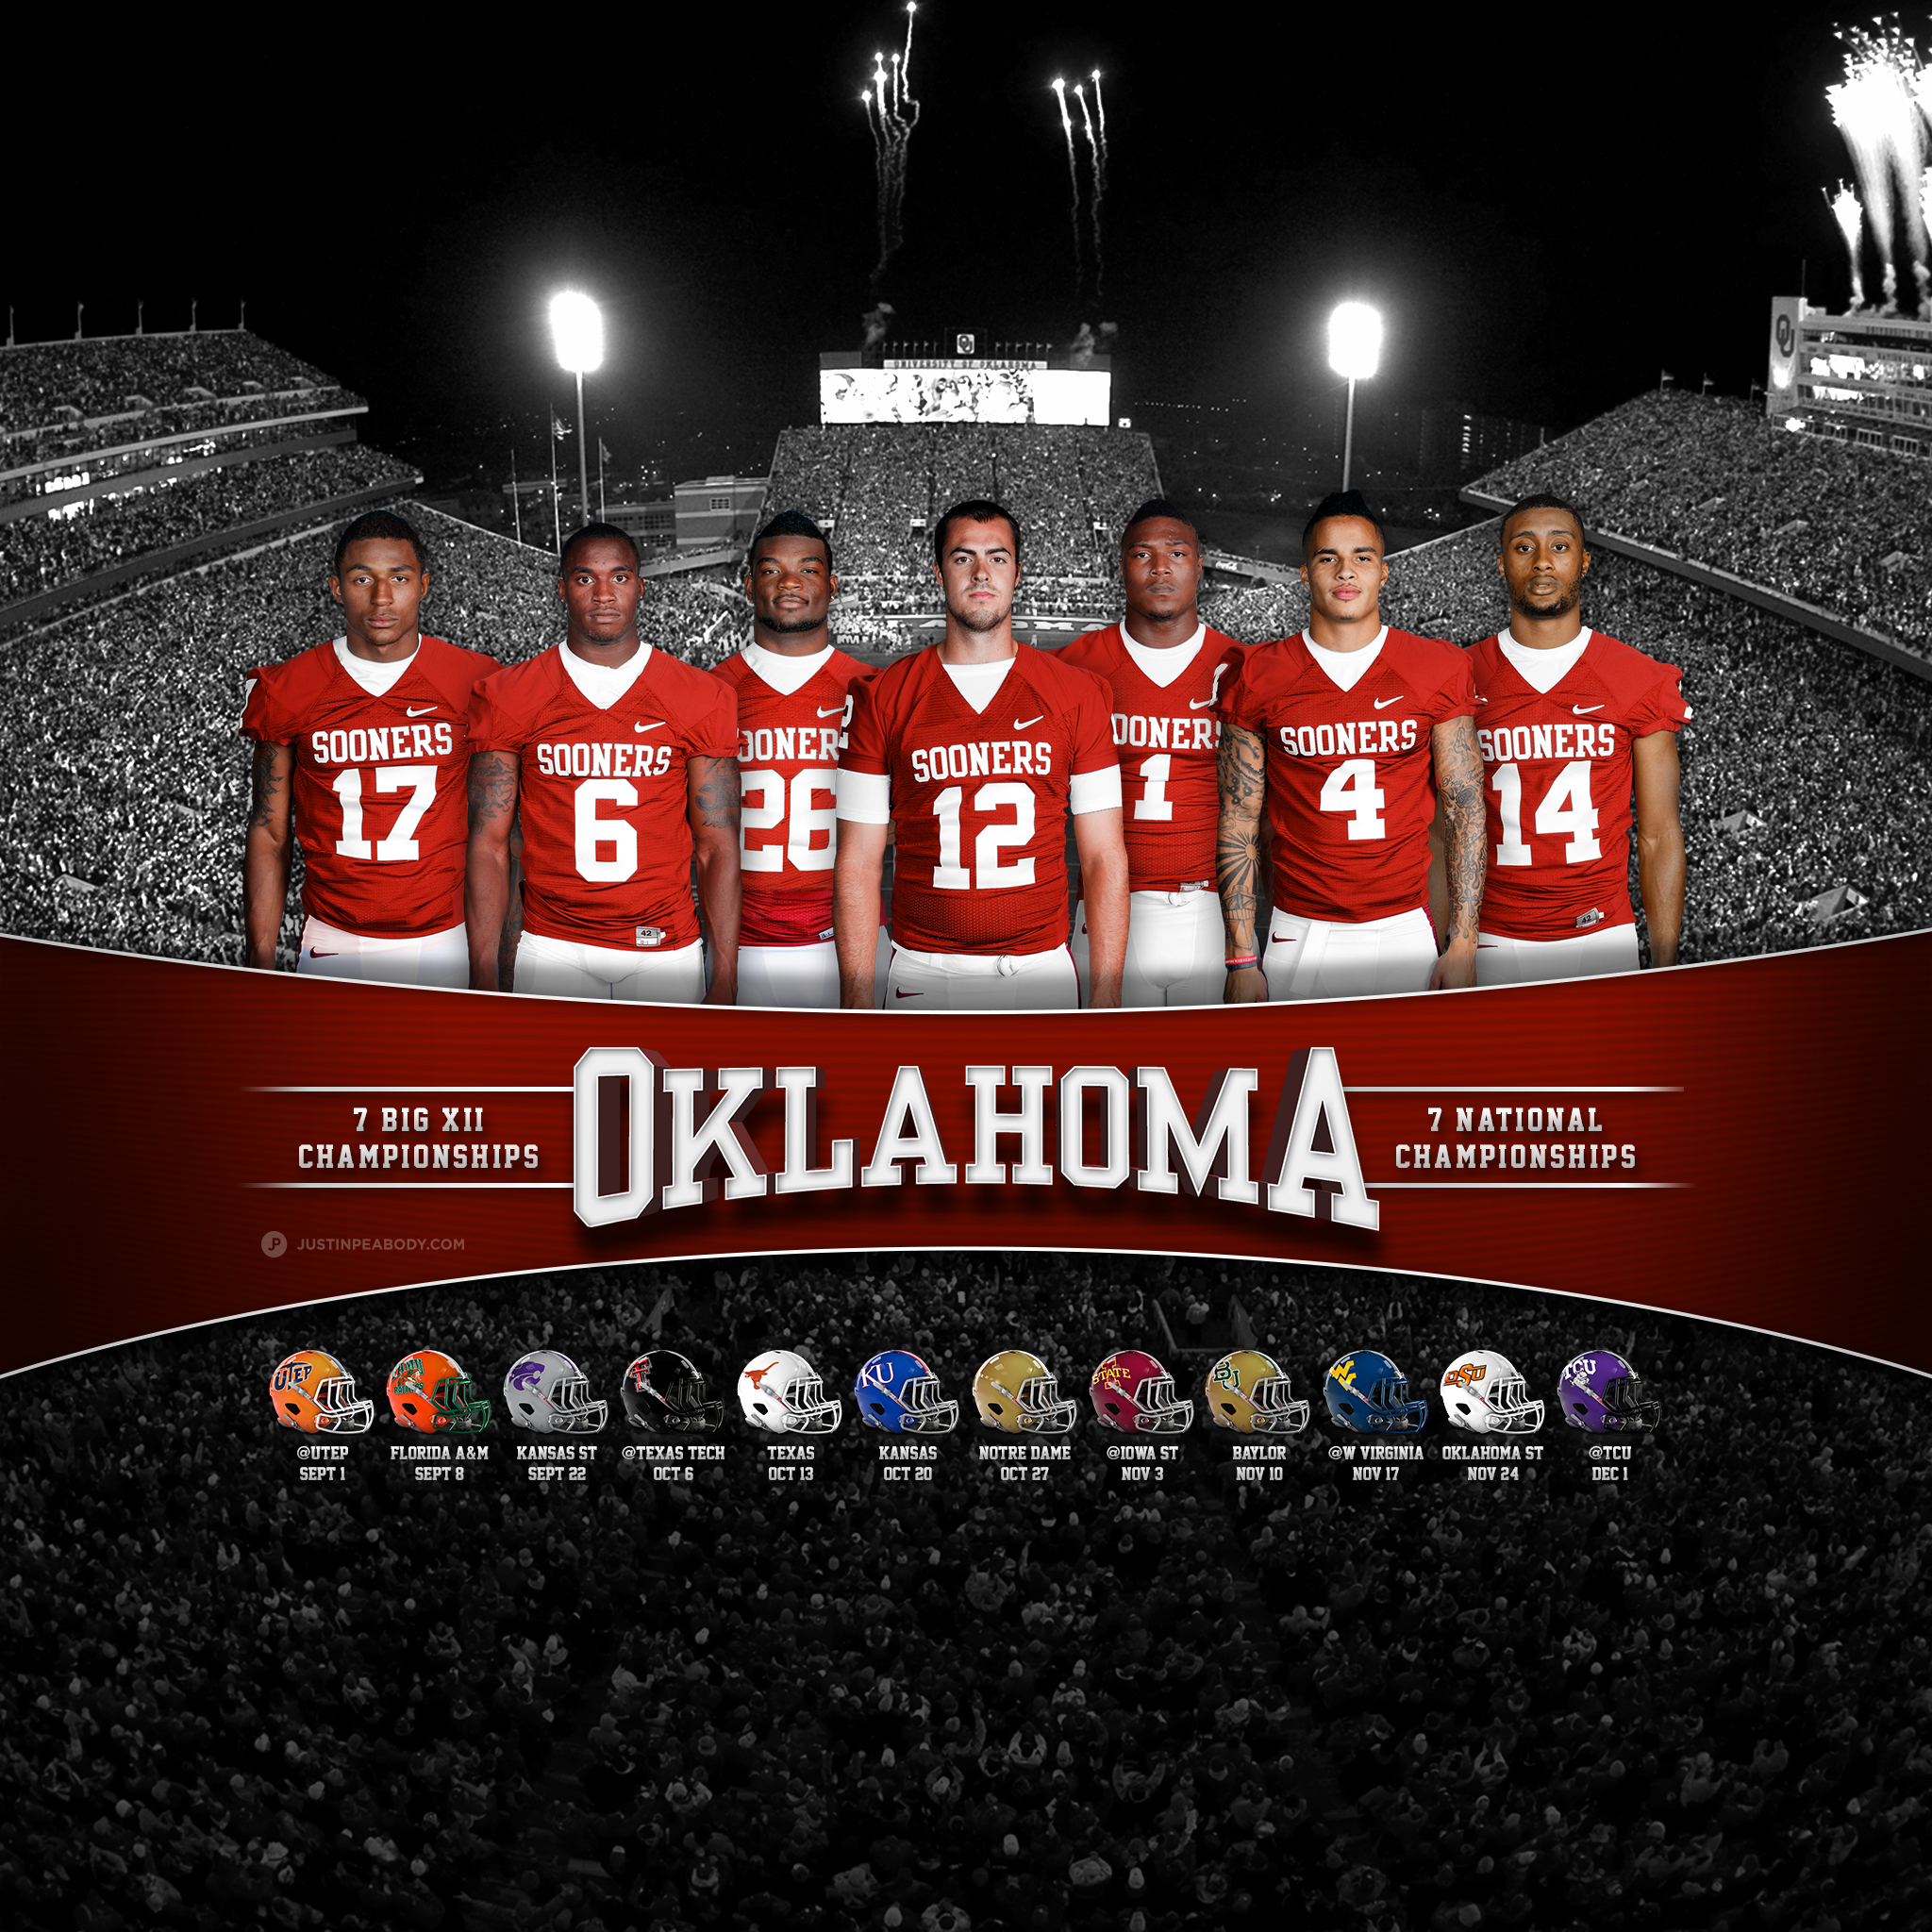 [48+] Oklahoma Sooners Wallpaper And Screensavers On